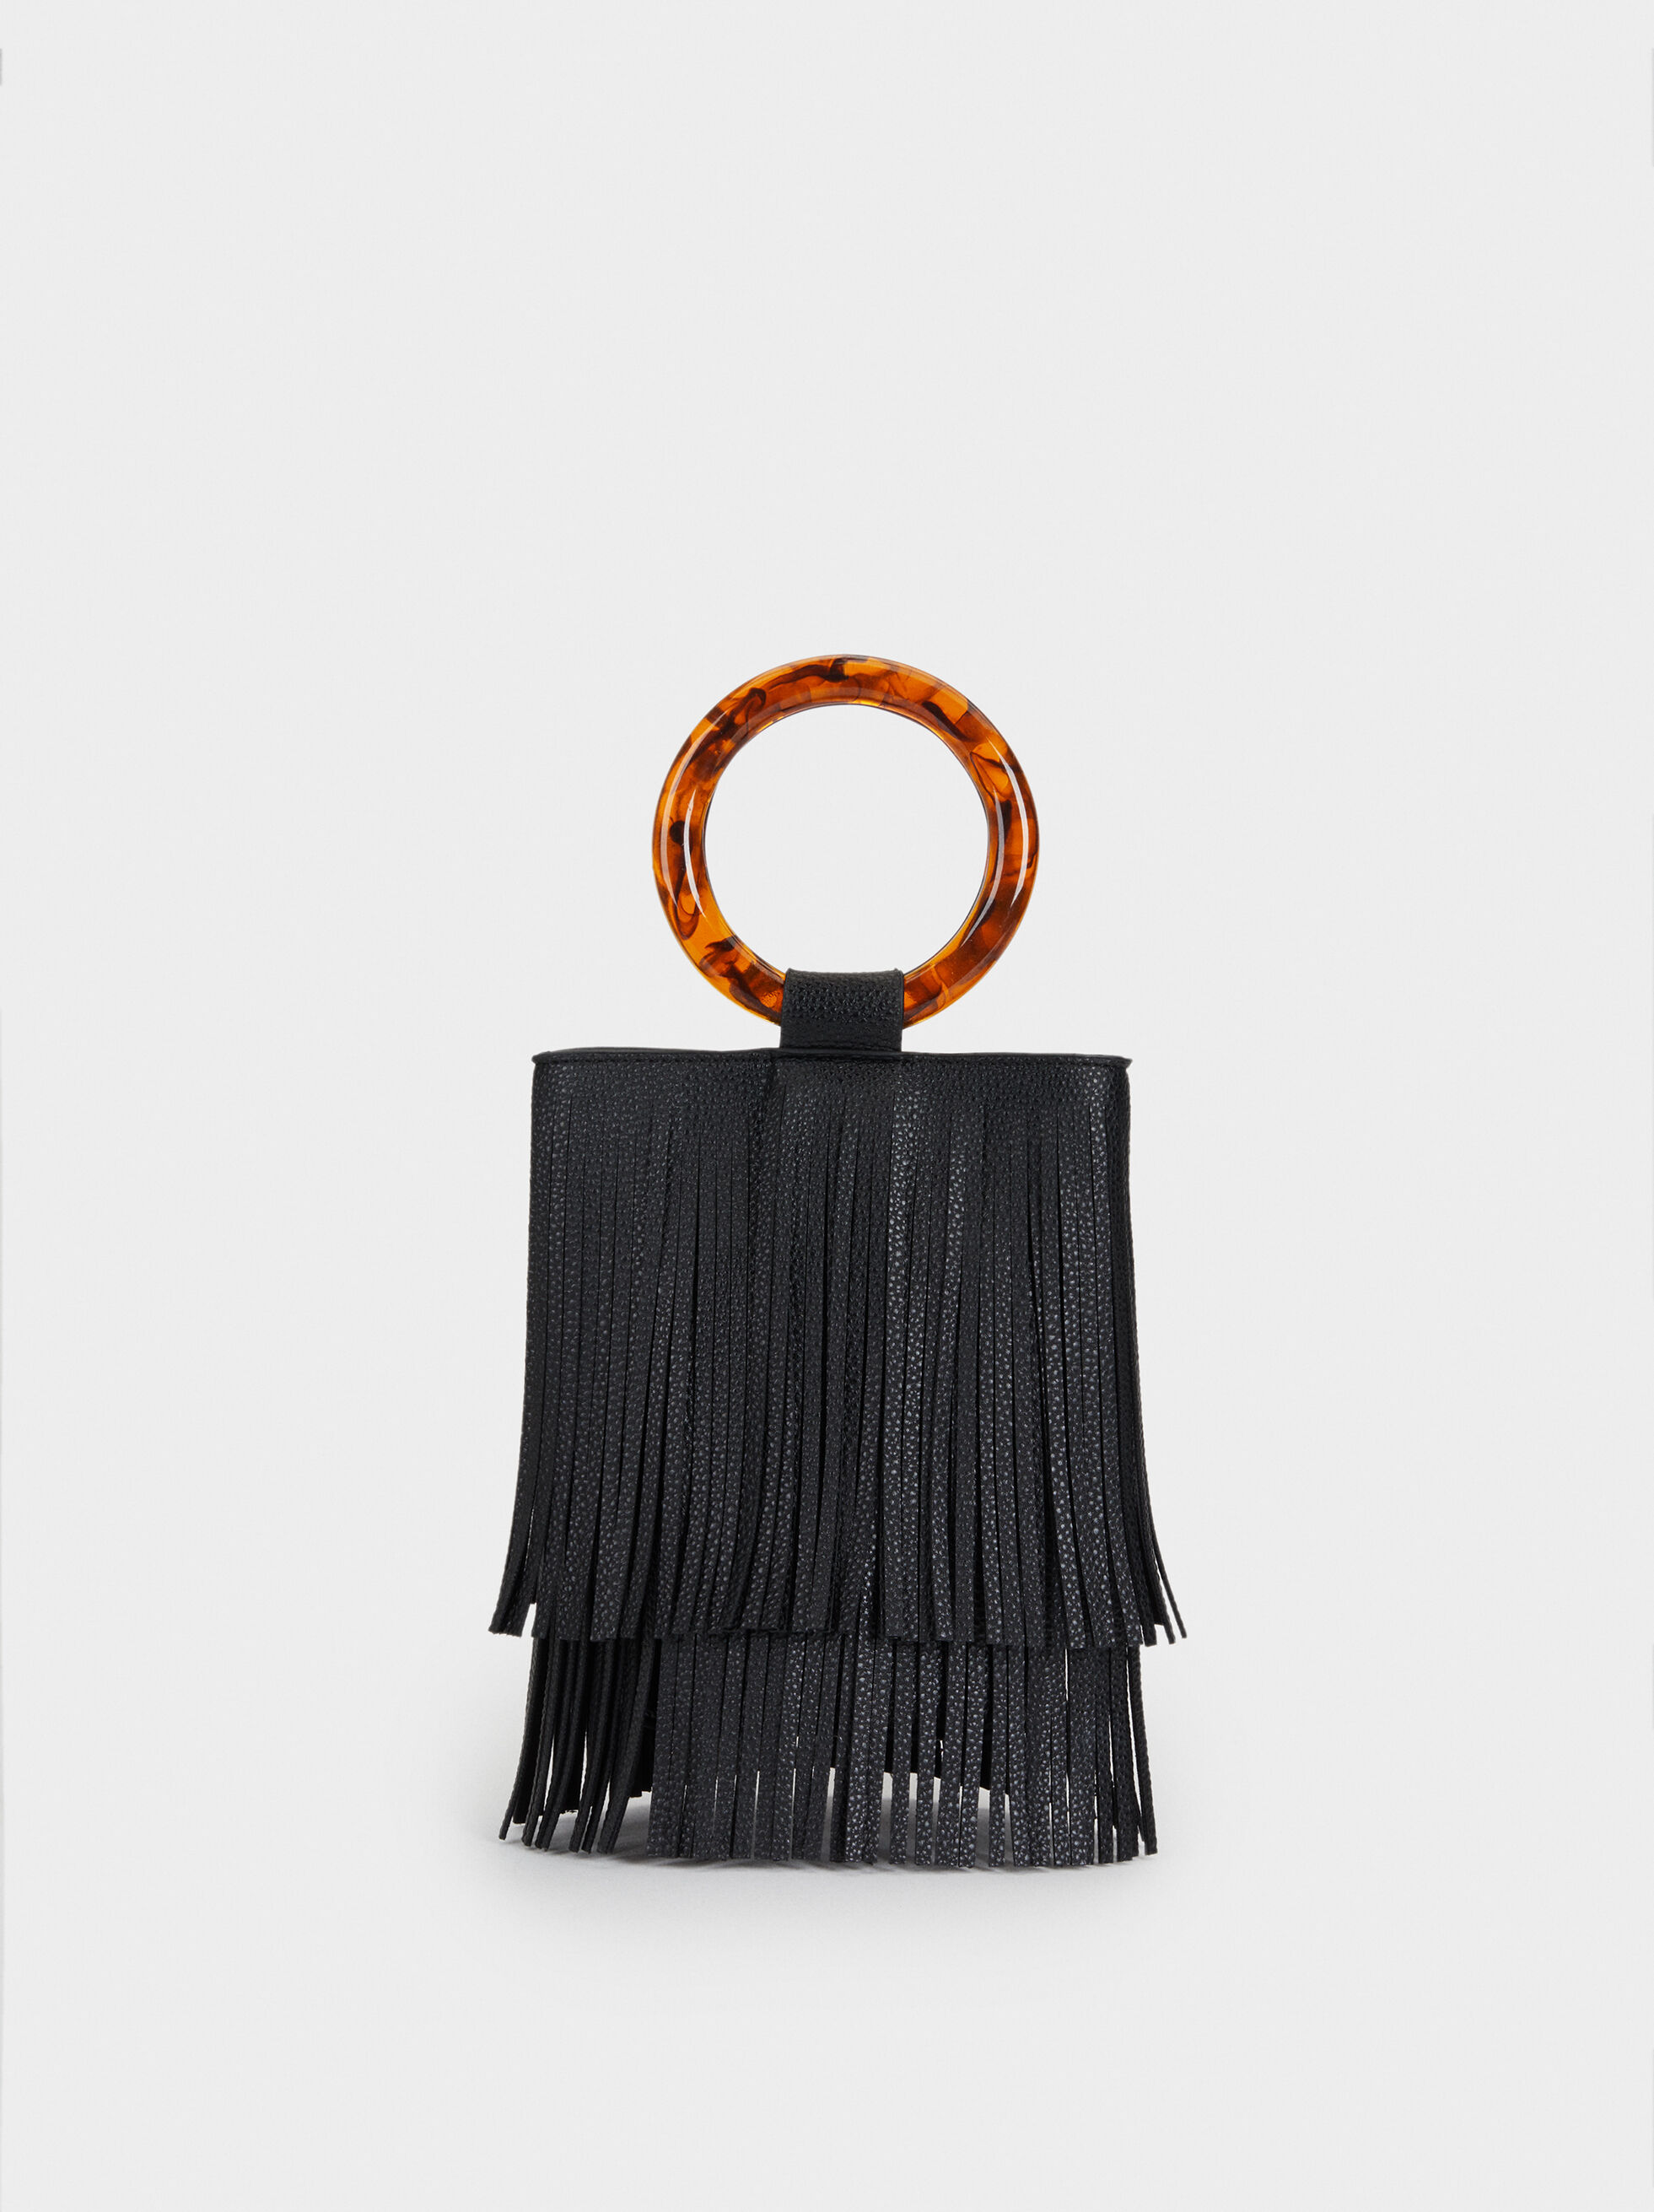 Handbag With Fringes, Black, hi-res